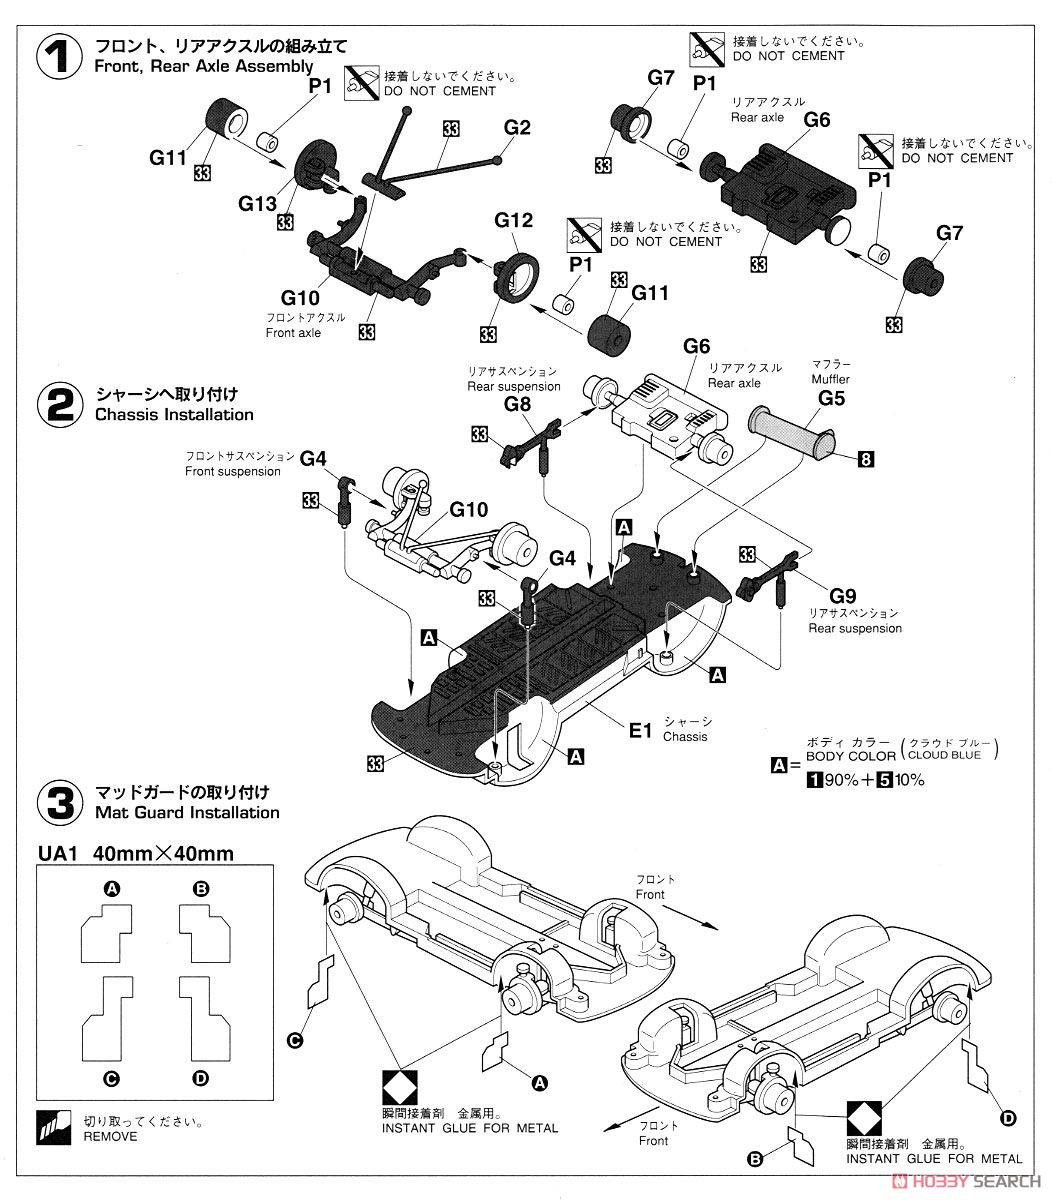 Subaru 360 Deluxe K111 1968 Model Car Images List Rear Axle Diagram Assembly Guide1